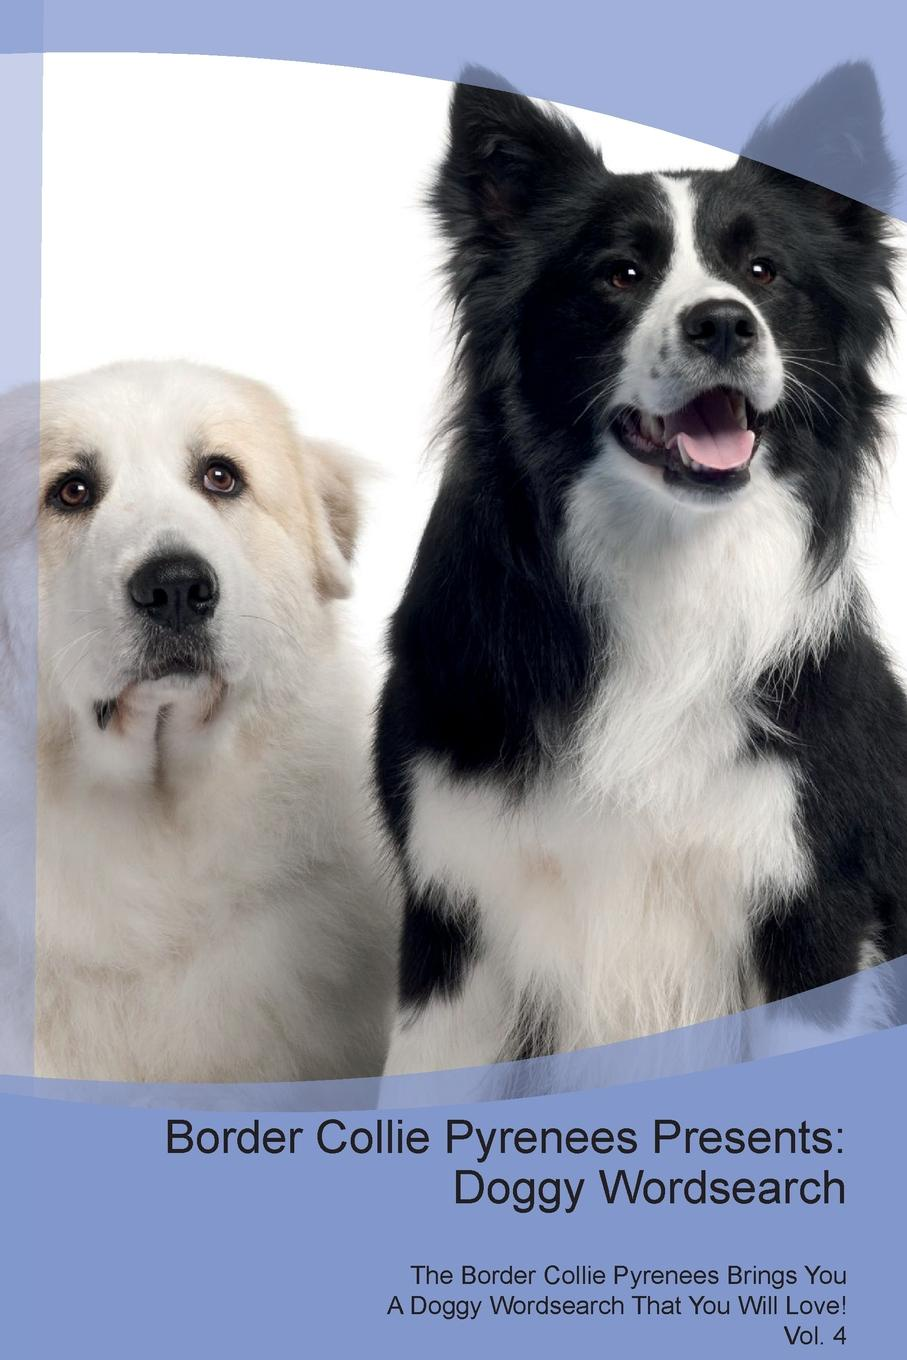 Doggy Puzzles Border Collie Pyrenees Presents. Wordsearch The Brings You A That Will Love! Vol. 4